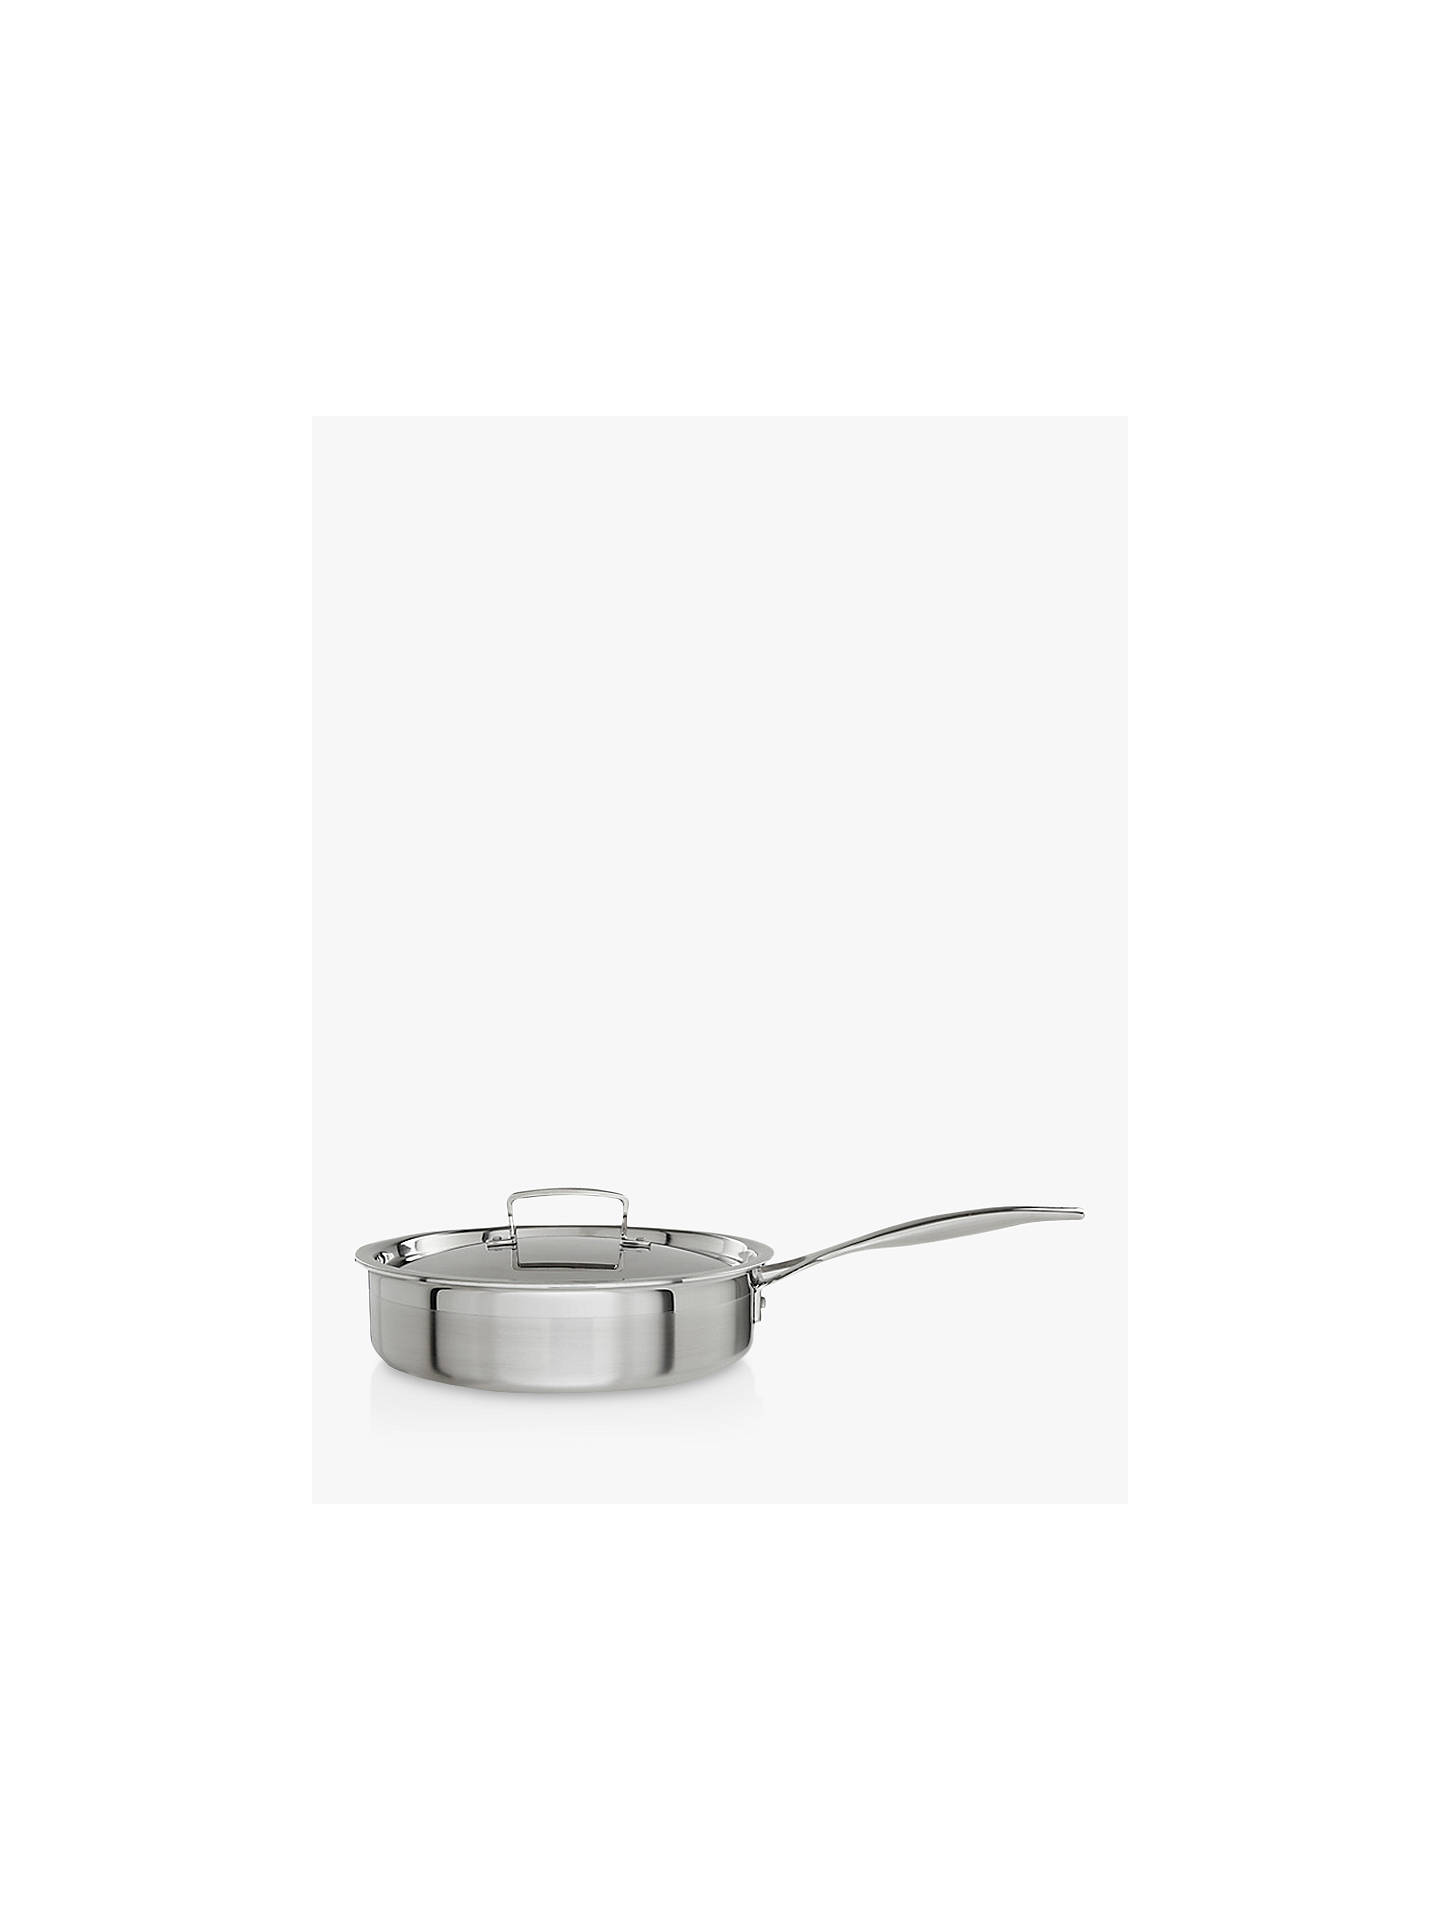 BuyLe Creuset 3-Ply Stainless Steel 24cm Sauté Pan with Lid Online at johnlewis.com